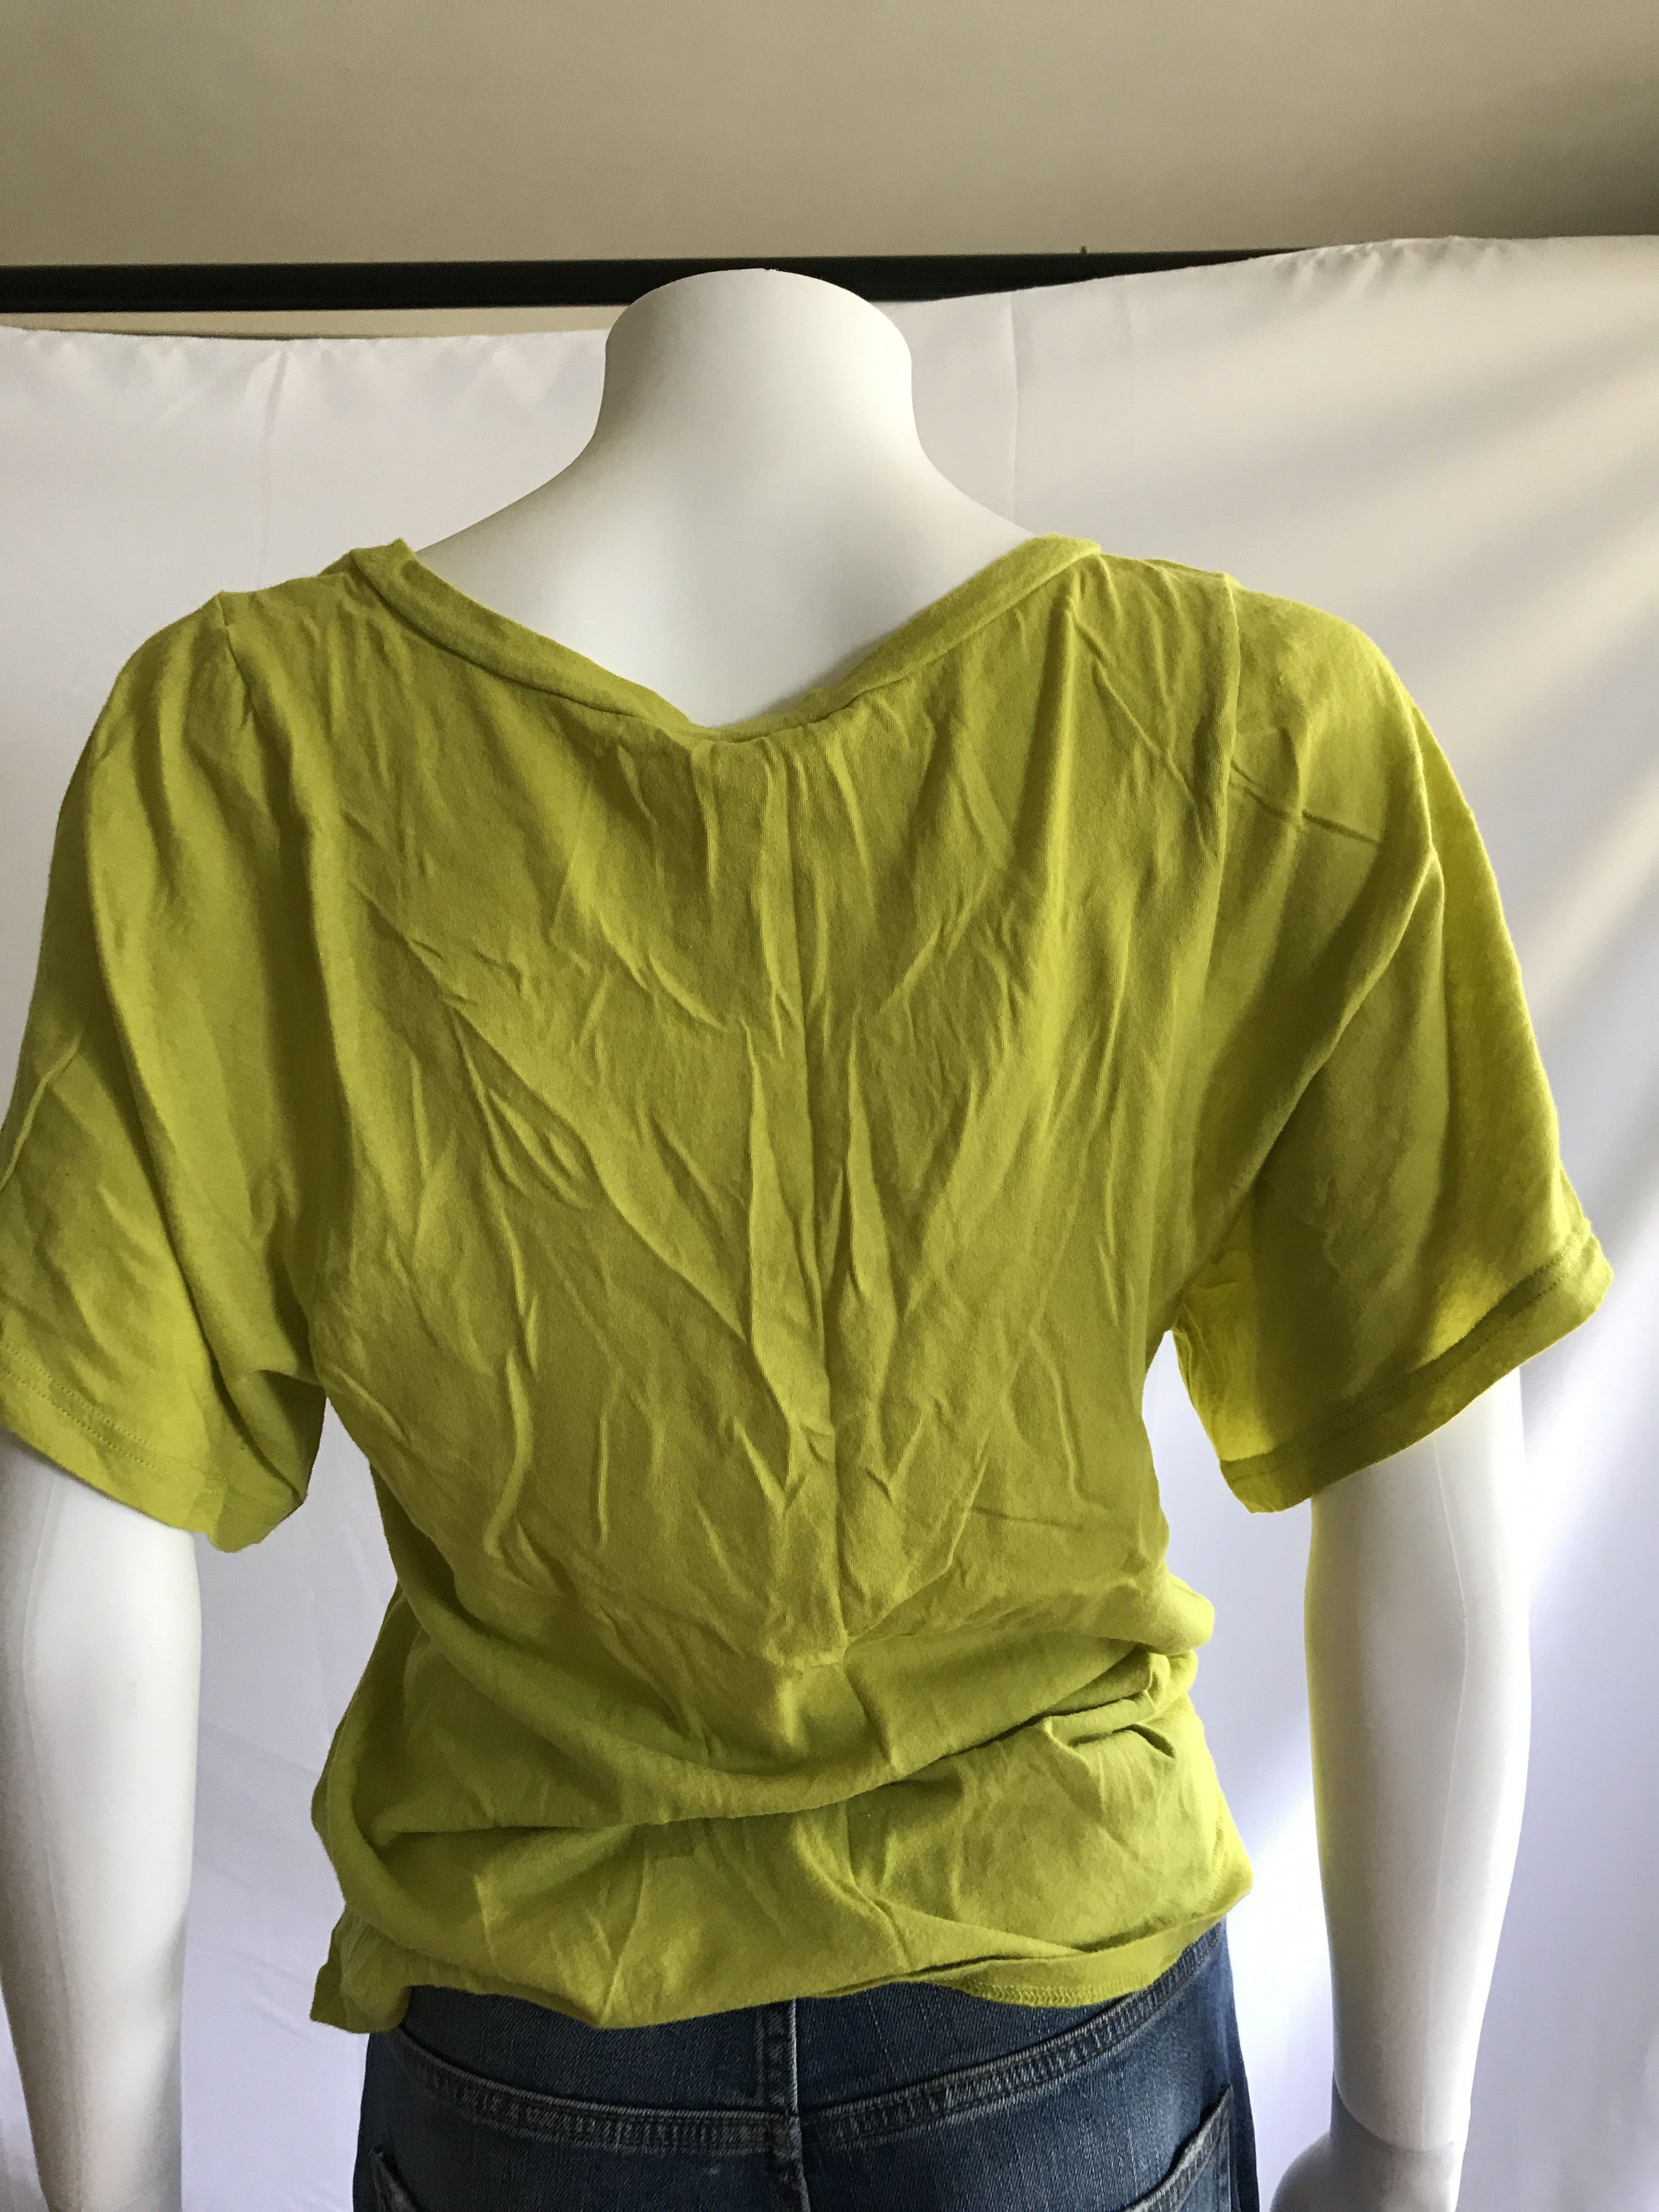 Vintage early 2000s Frenchi Lime Green Deep V neck T-Shirts - BAD HABIT